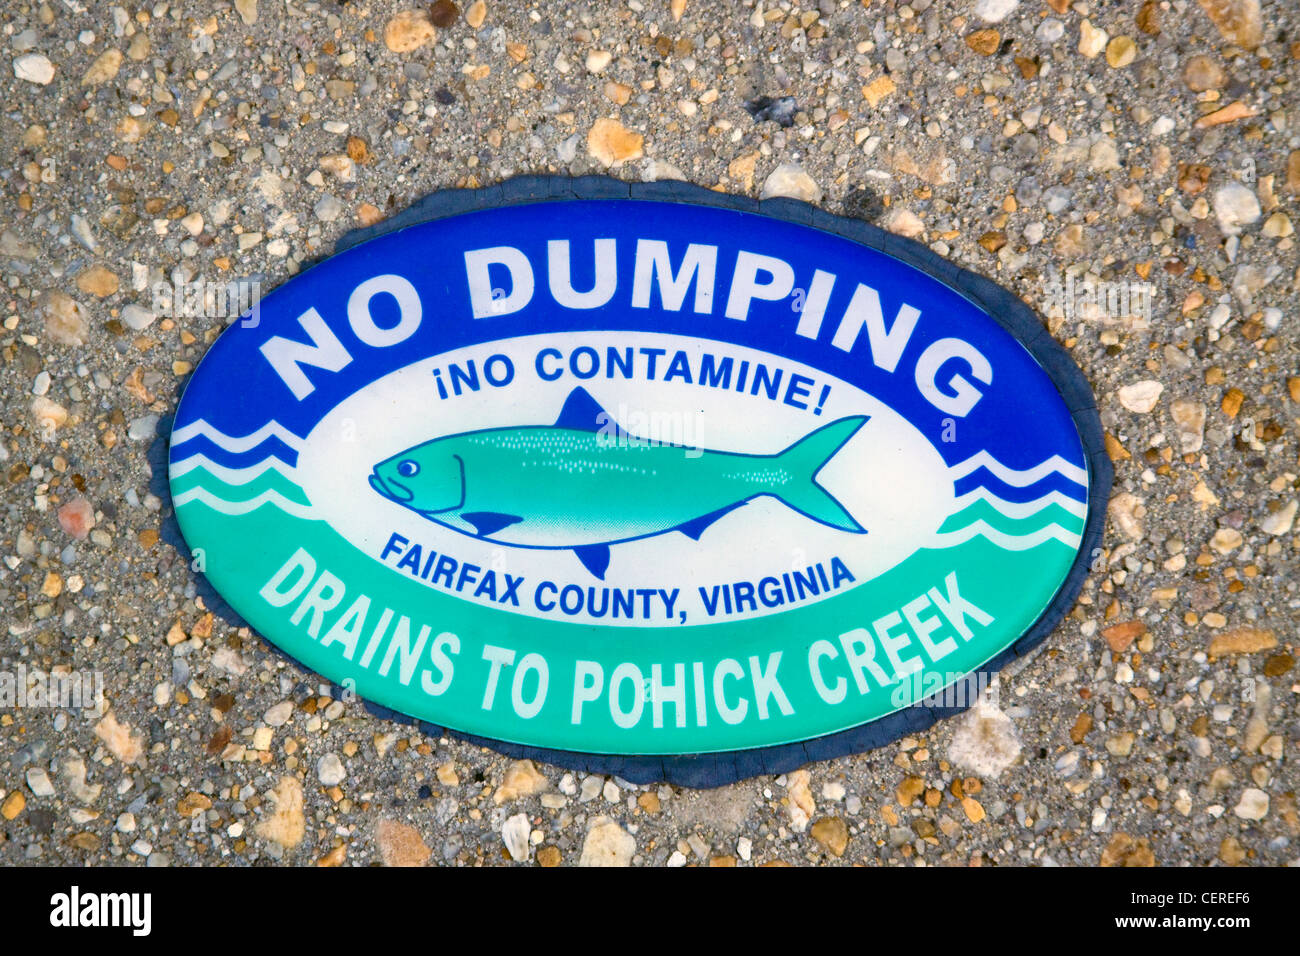 Fairfax County Virginia No Dumping Drains to Pohick Creek sign on top of a storm water drainage catch basin inlet - Stock Image